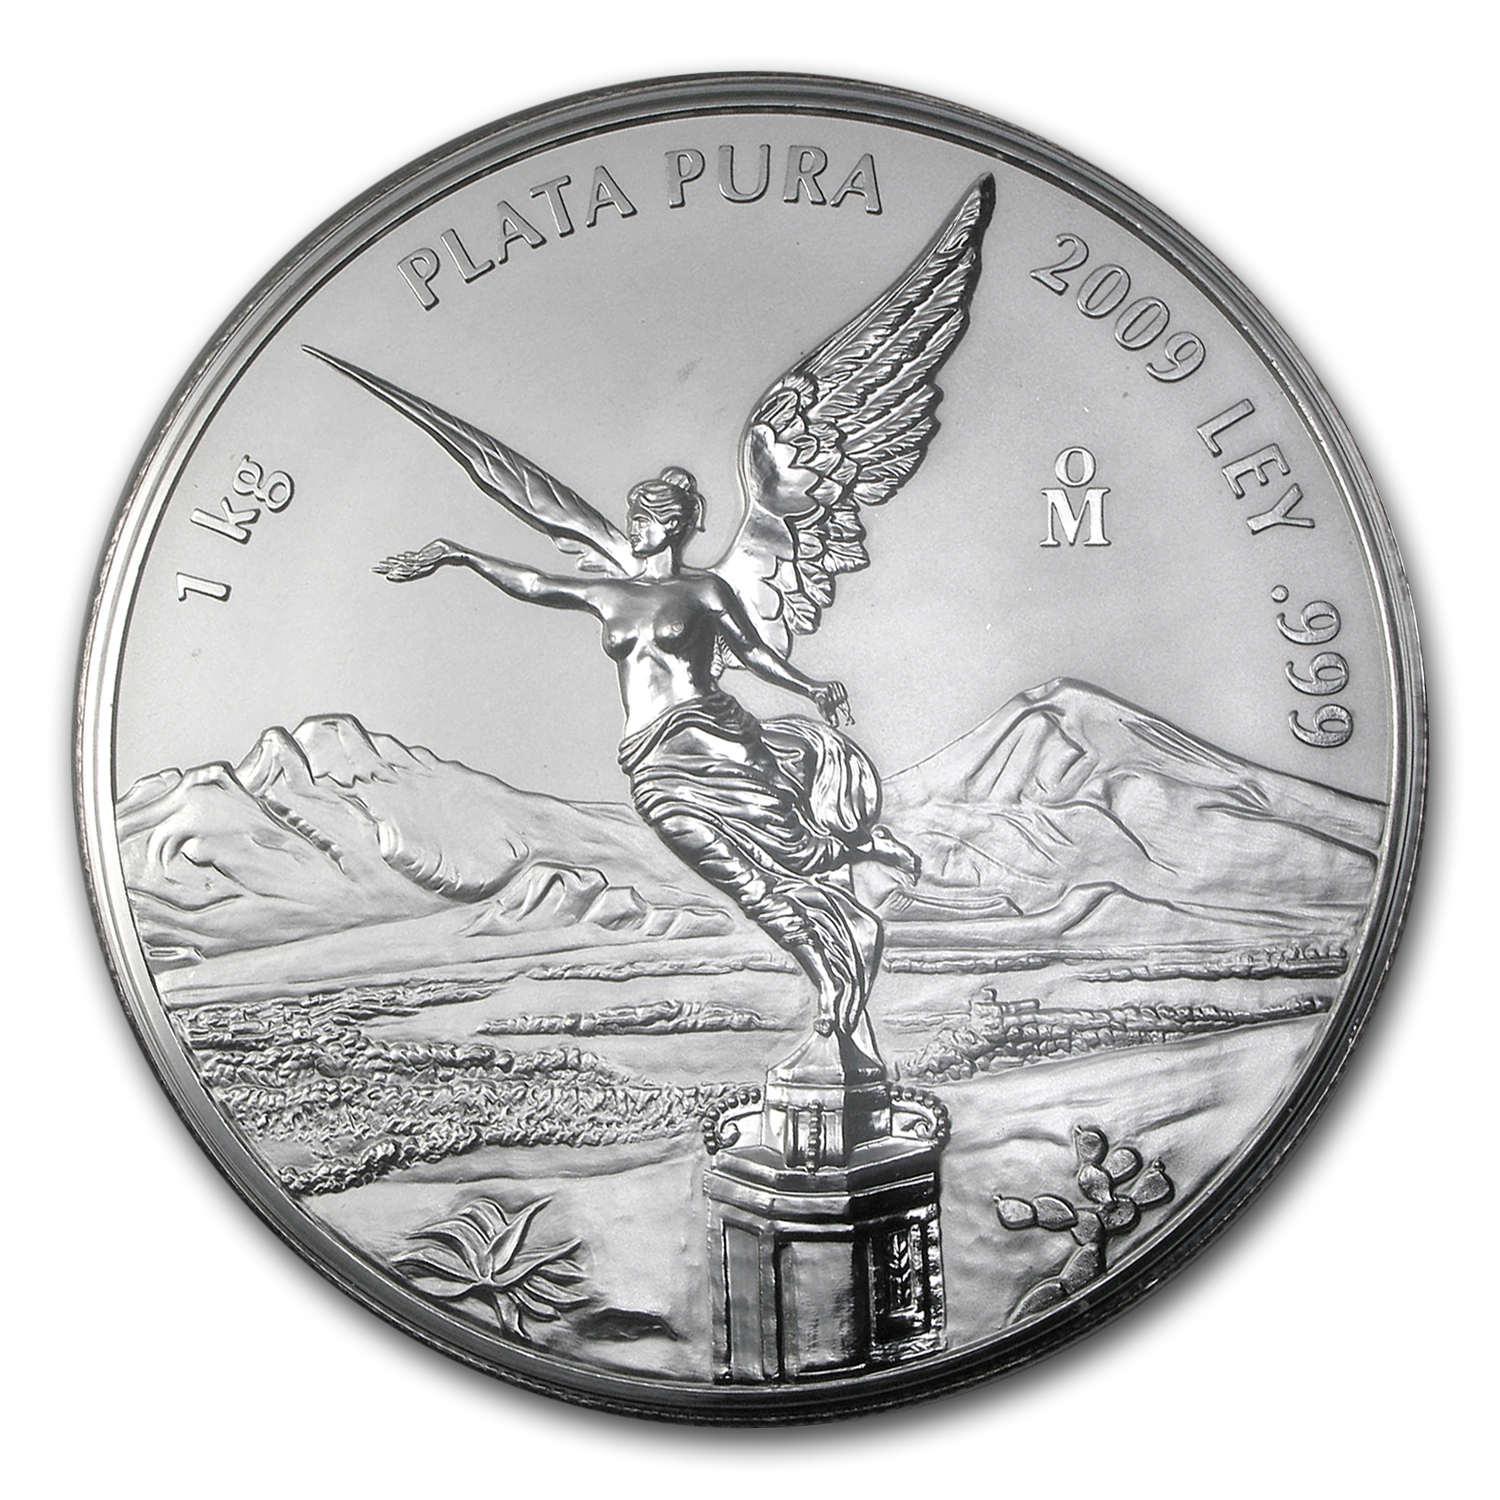 2009 1 kilo Silver Libertad Proof Like (w/Box & COA)